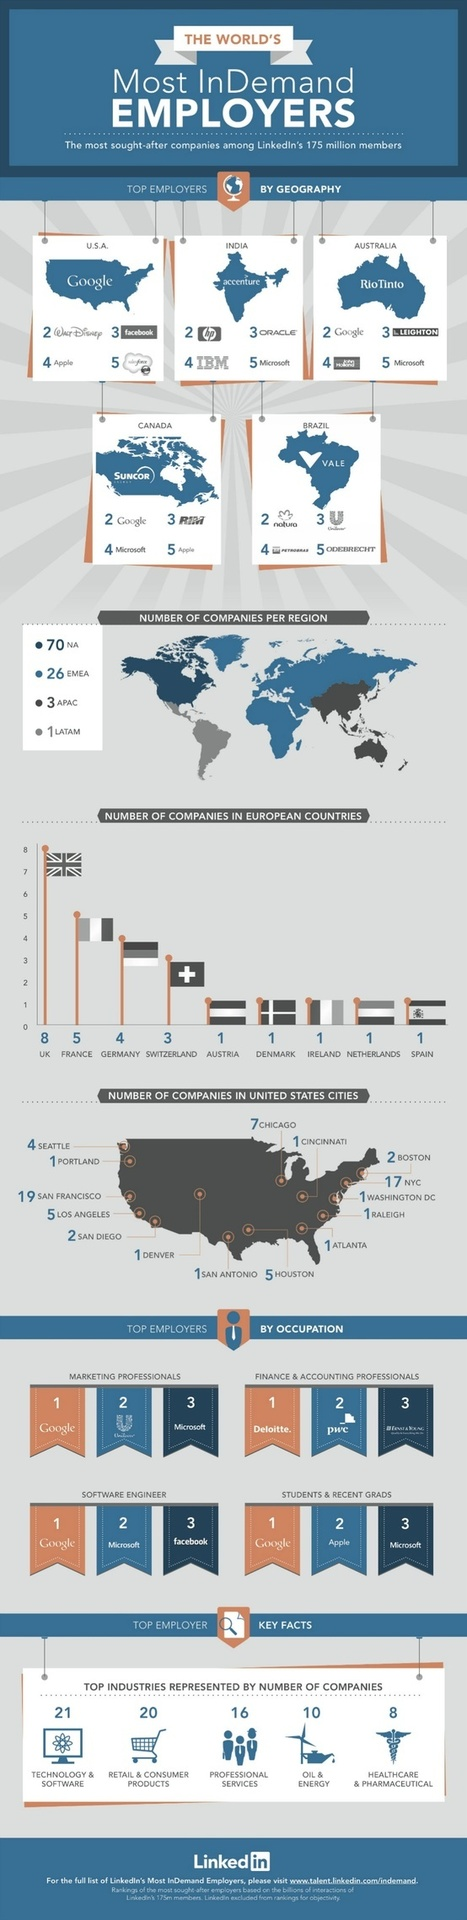 The worlds more in demand employers #infographic | All about Business | Scoop.it